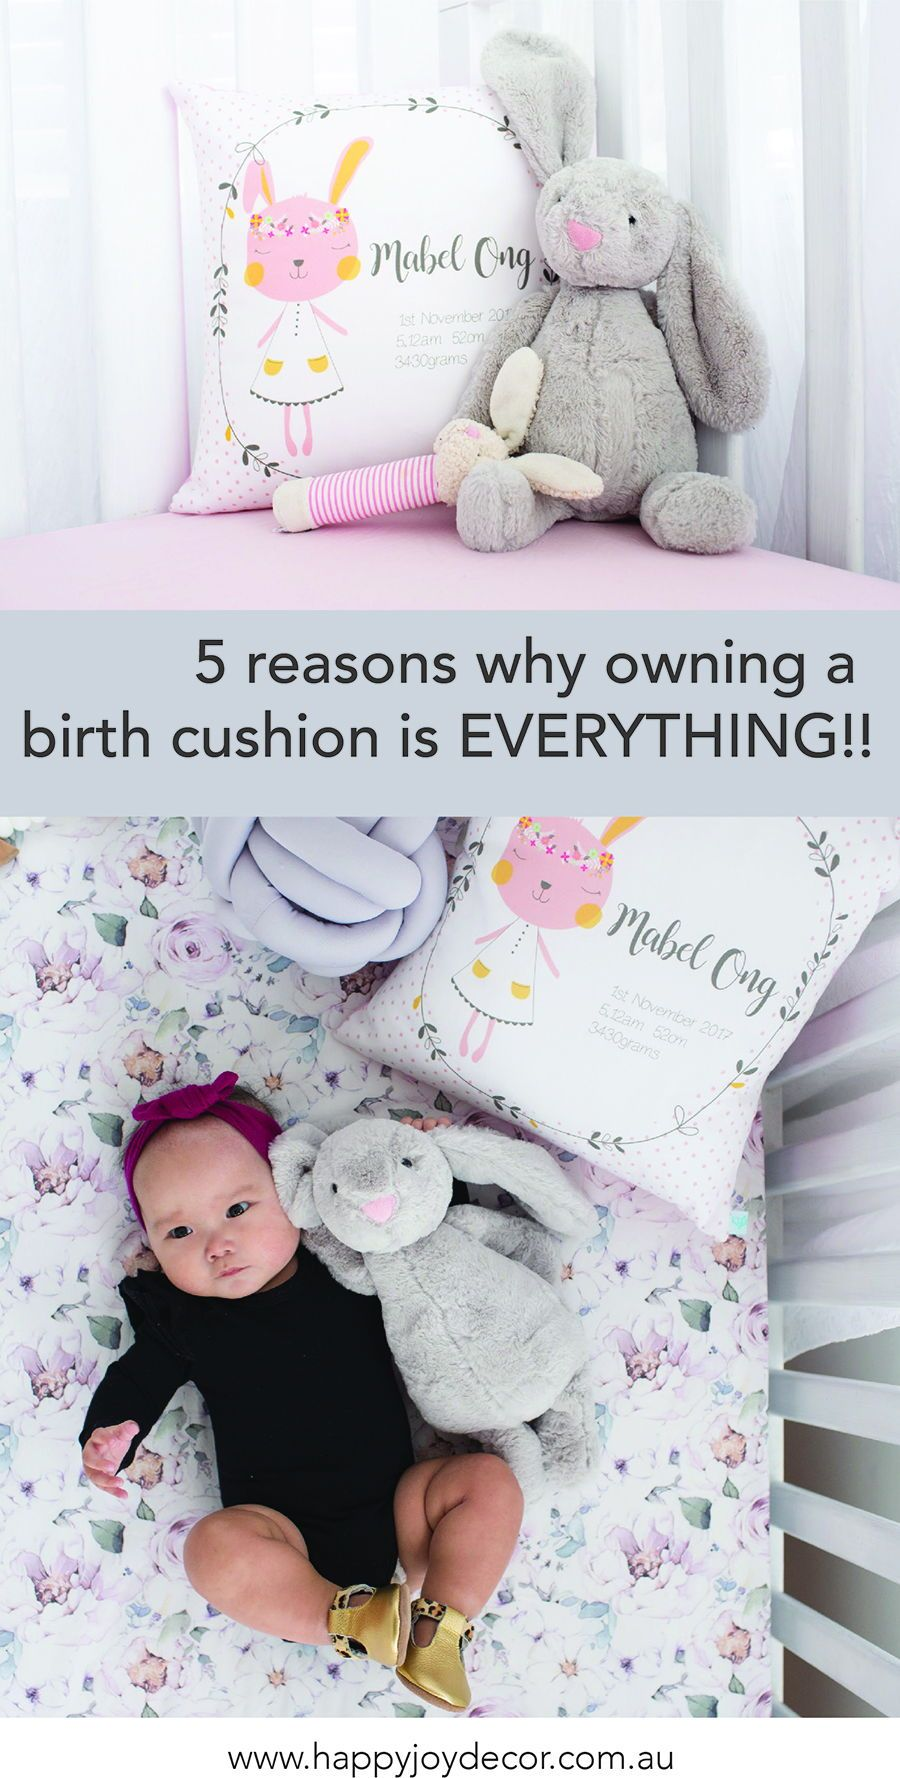 5 reasons why owning a birth cushion is everything